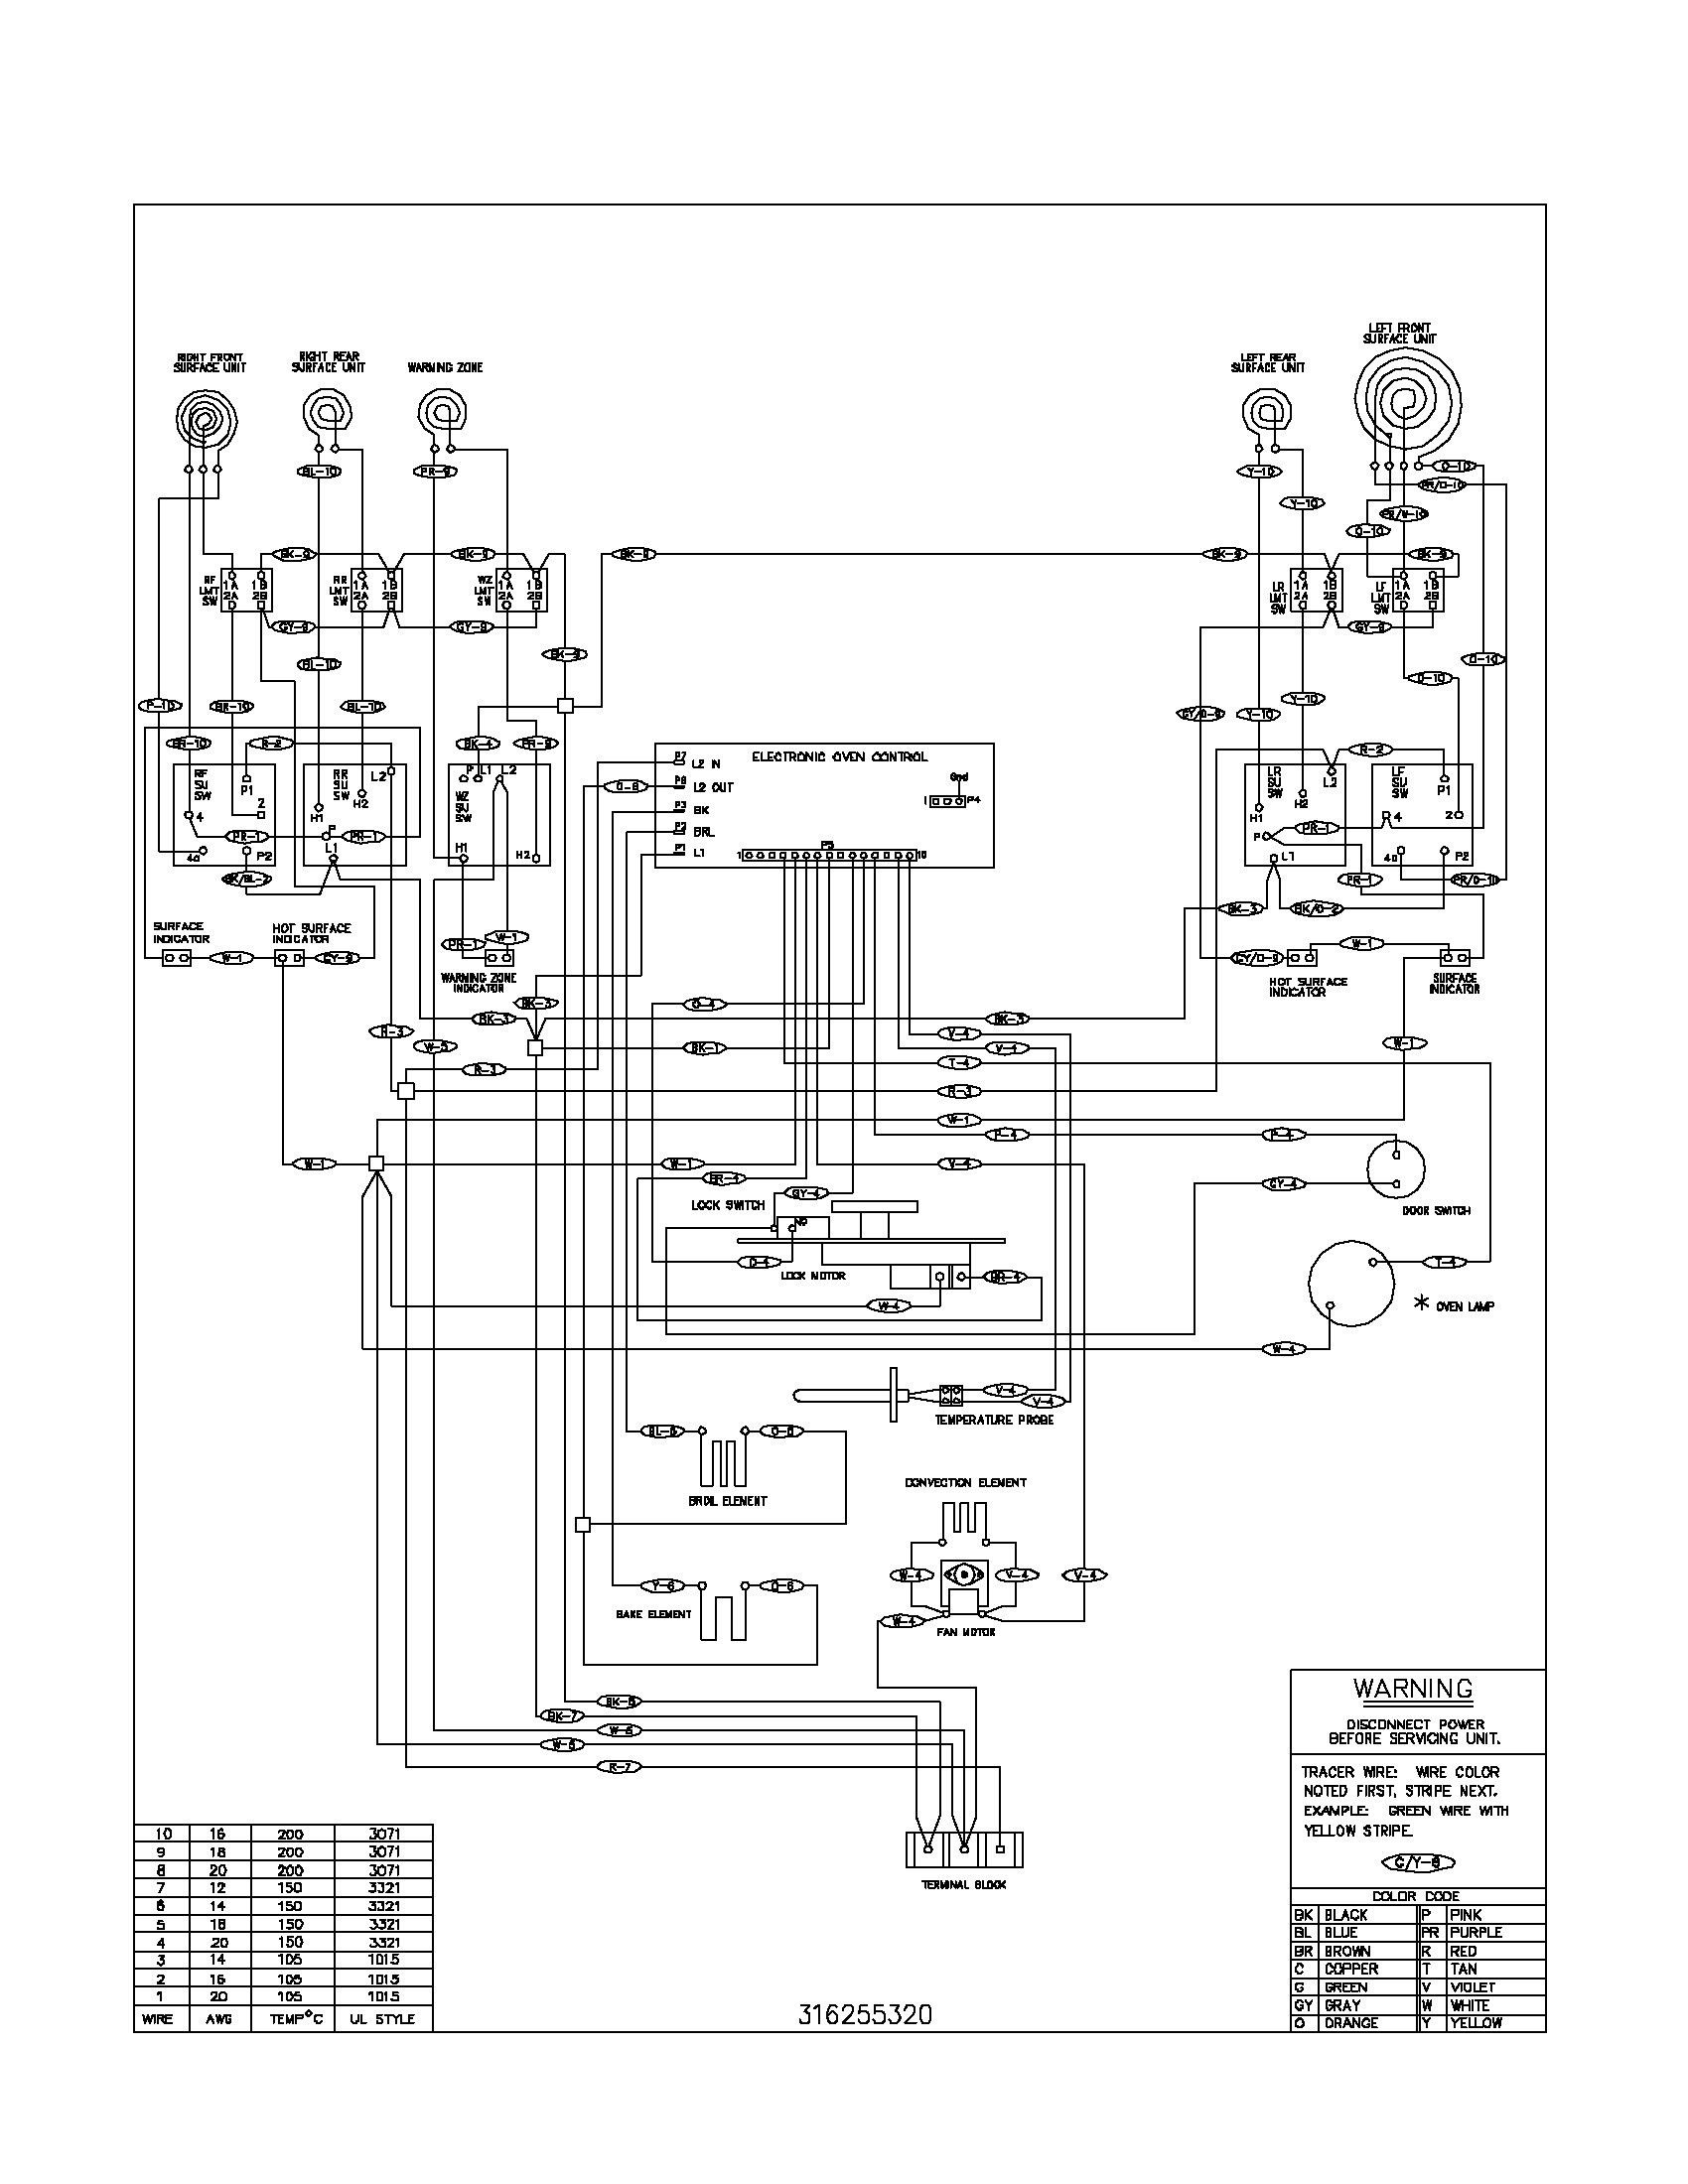 24 Wiring Diagram For Electric Stove - bookingritzcarlton.info | Electric  stove, Electrical diagram, Electrical wiring diagram | Whirlpool Stove Wiring Schematic |  | Pinterest